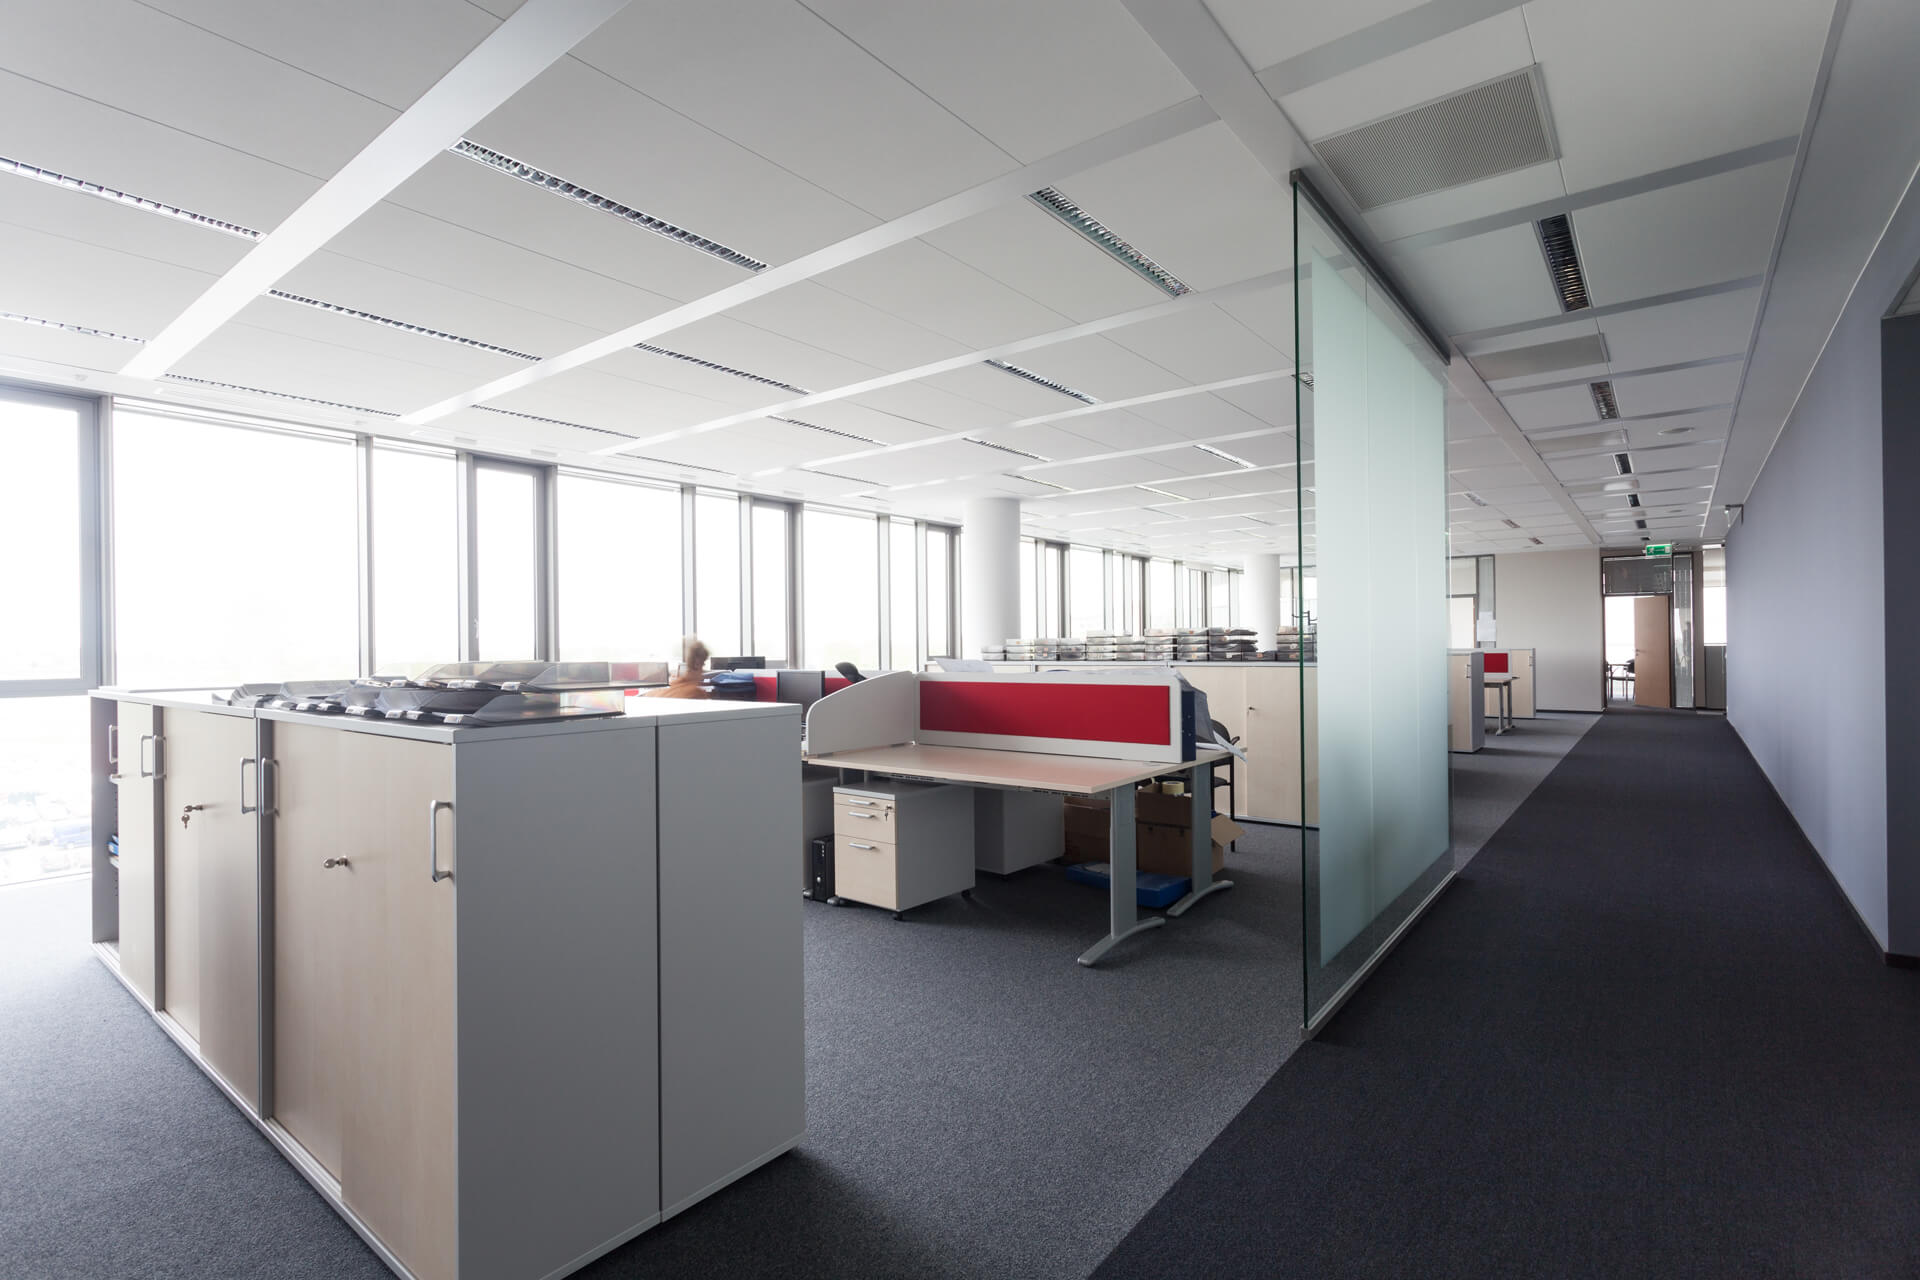 Glass office partitioning, Suspended ceilings & Office furniture